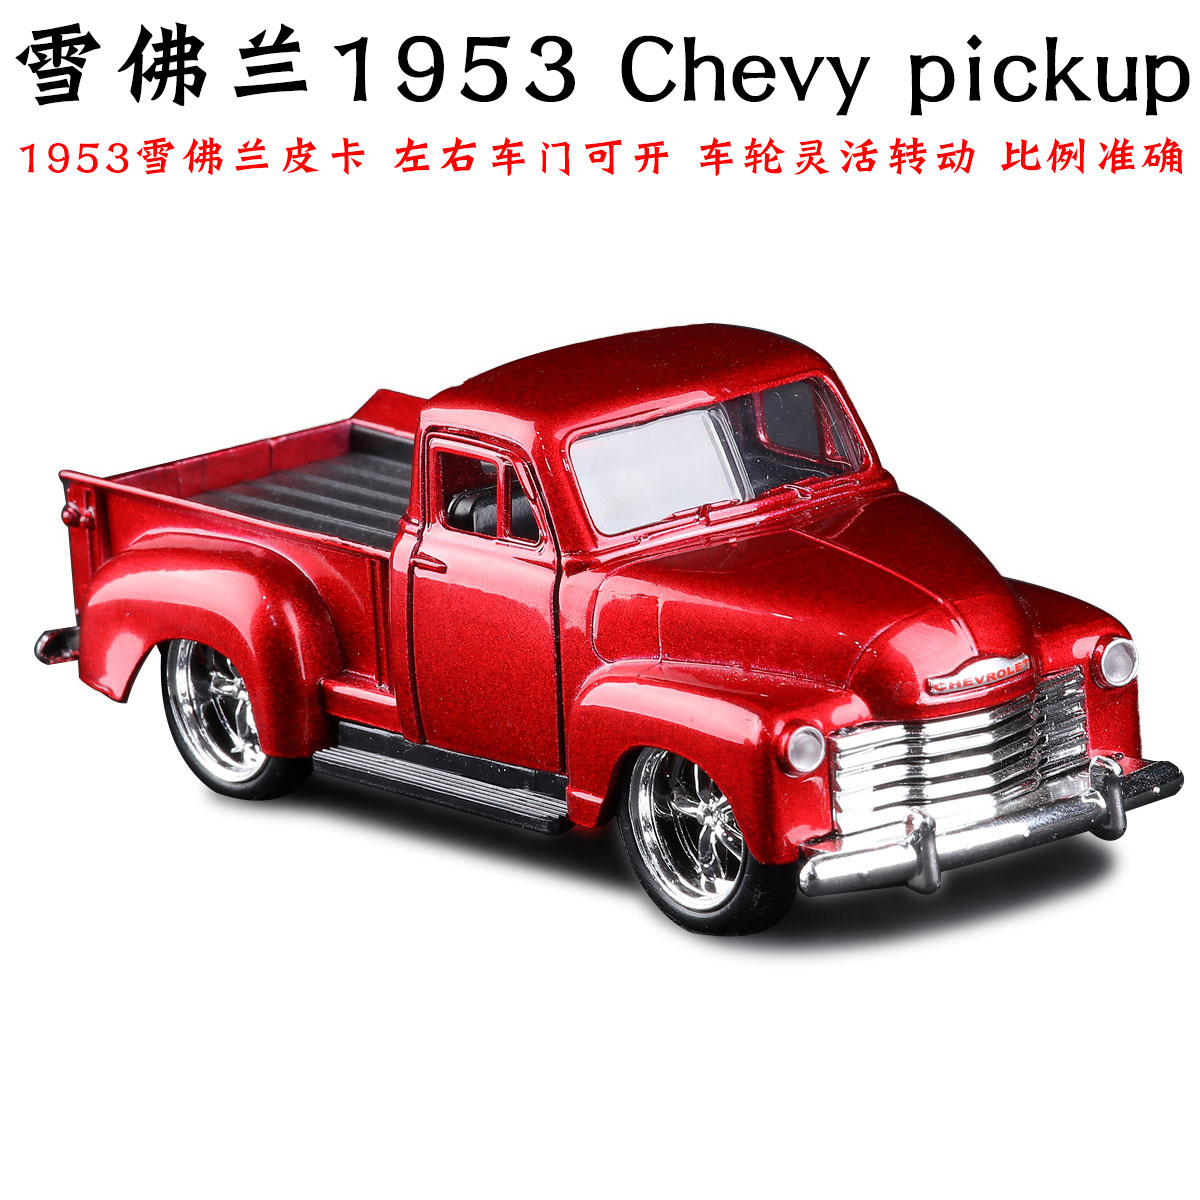 jada 1 32 scale high simulation alloy model car chevrolet chevy 1953 pickup quality toy models free shipping [ 1200 x 1200 Pixel ]